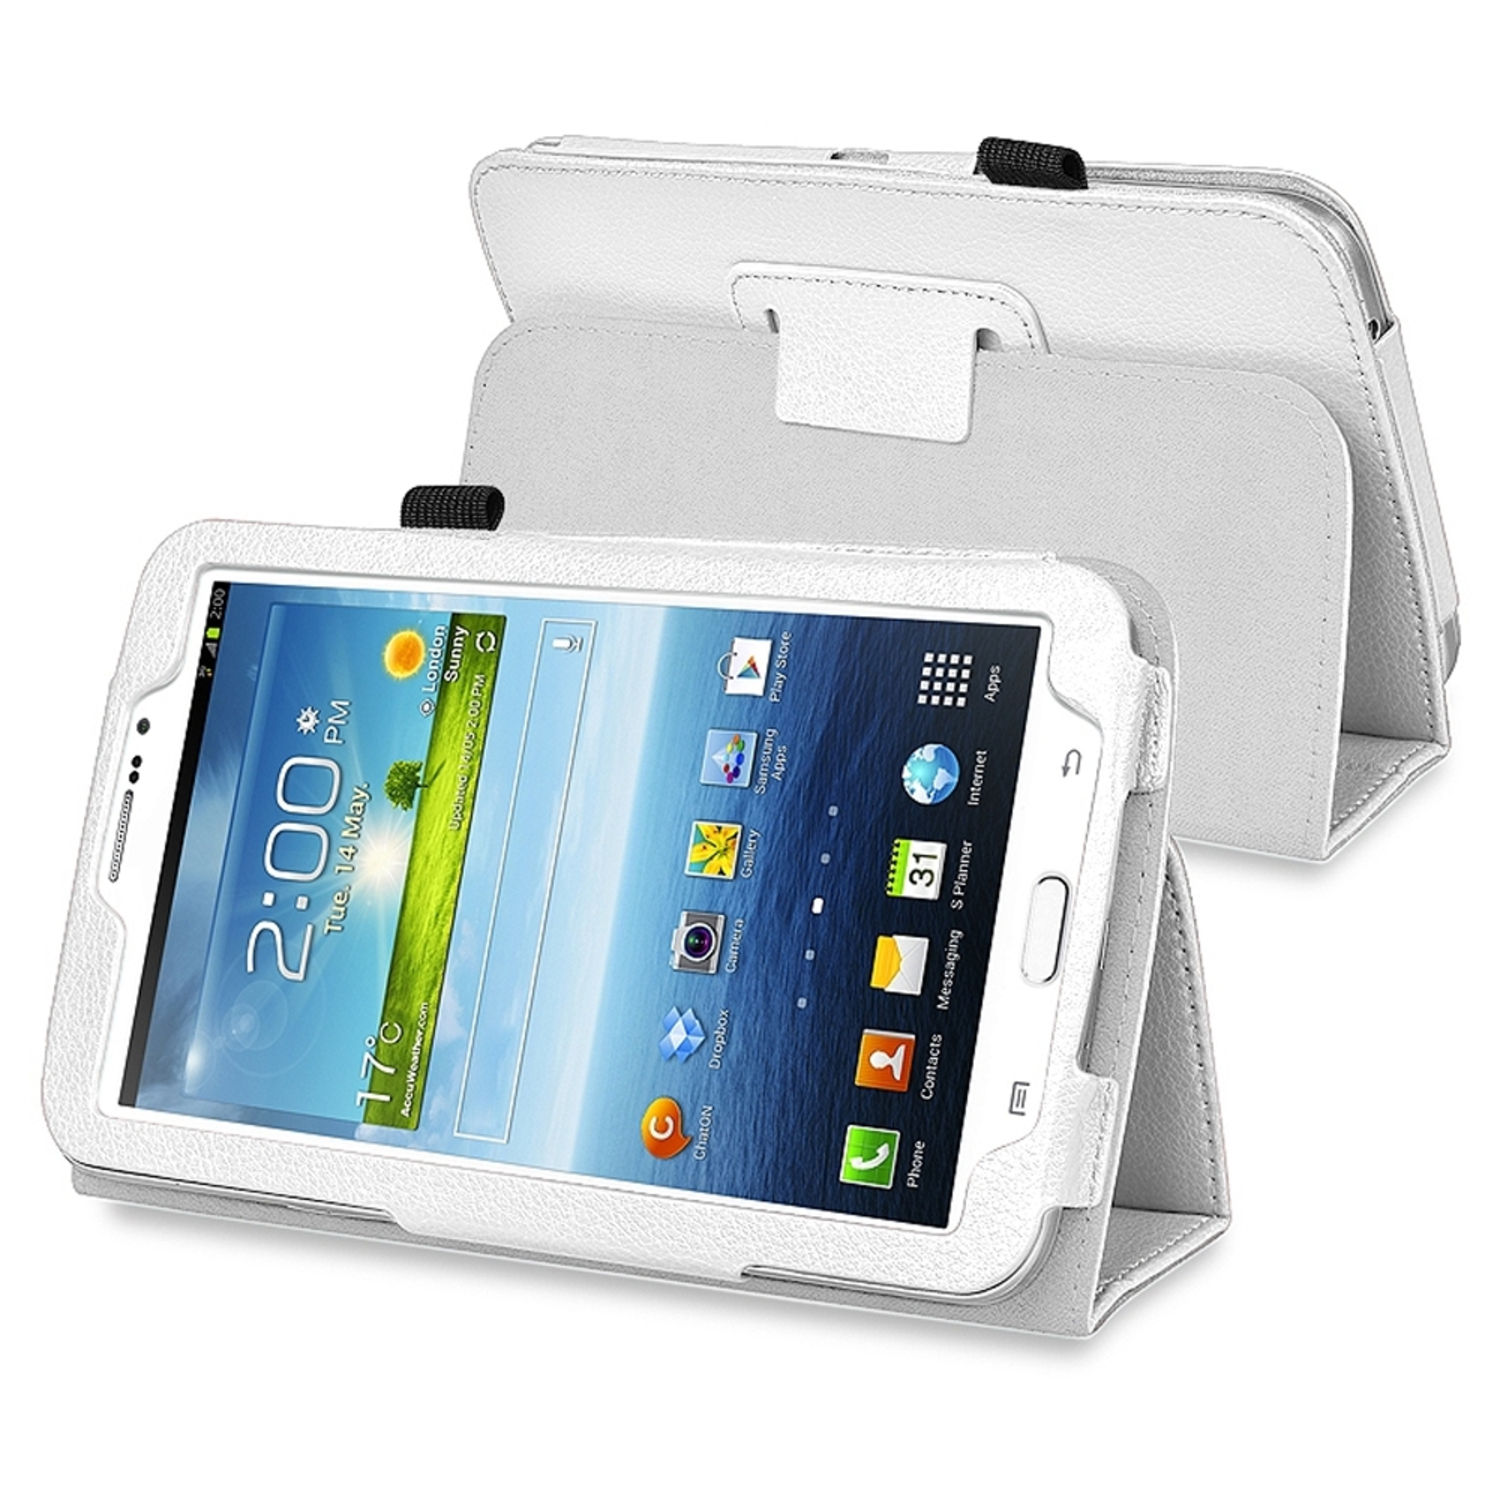 Insten Leather Case with Stand For Samsung Galaxy Tab 3 7.0 P3200, White